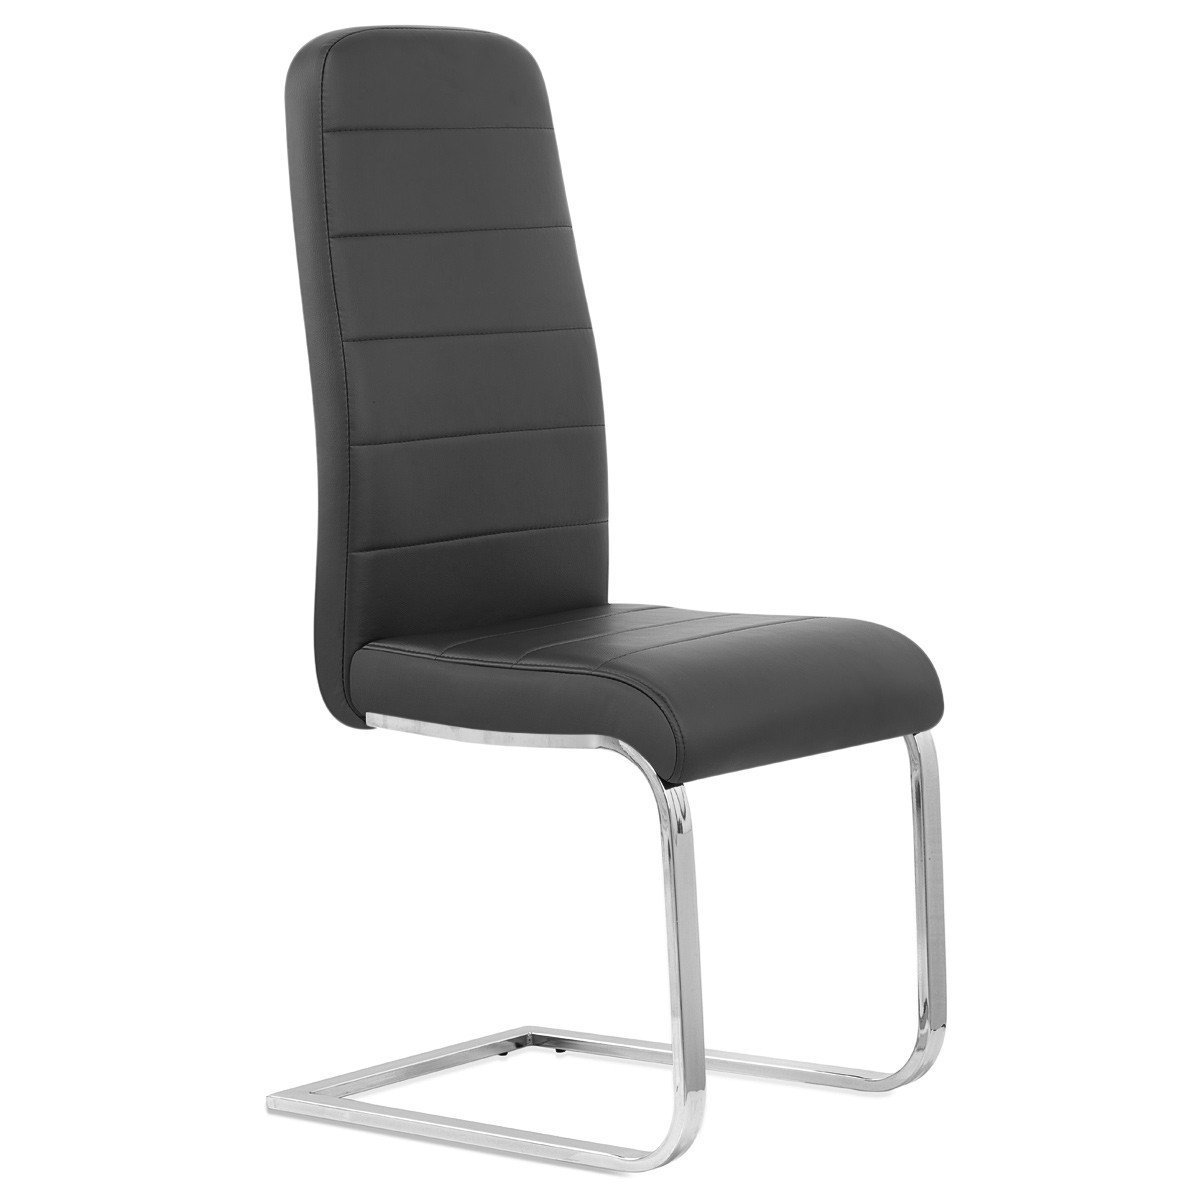 Pu black chair with chrome square tube leg for dining room